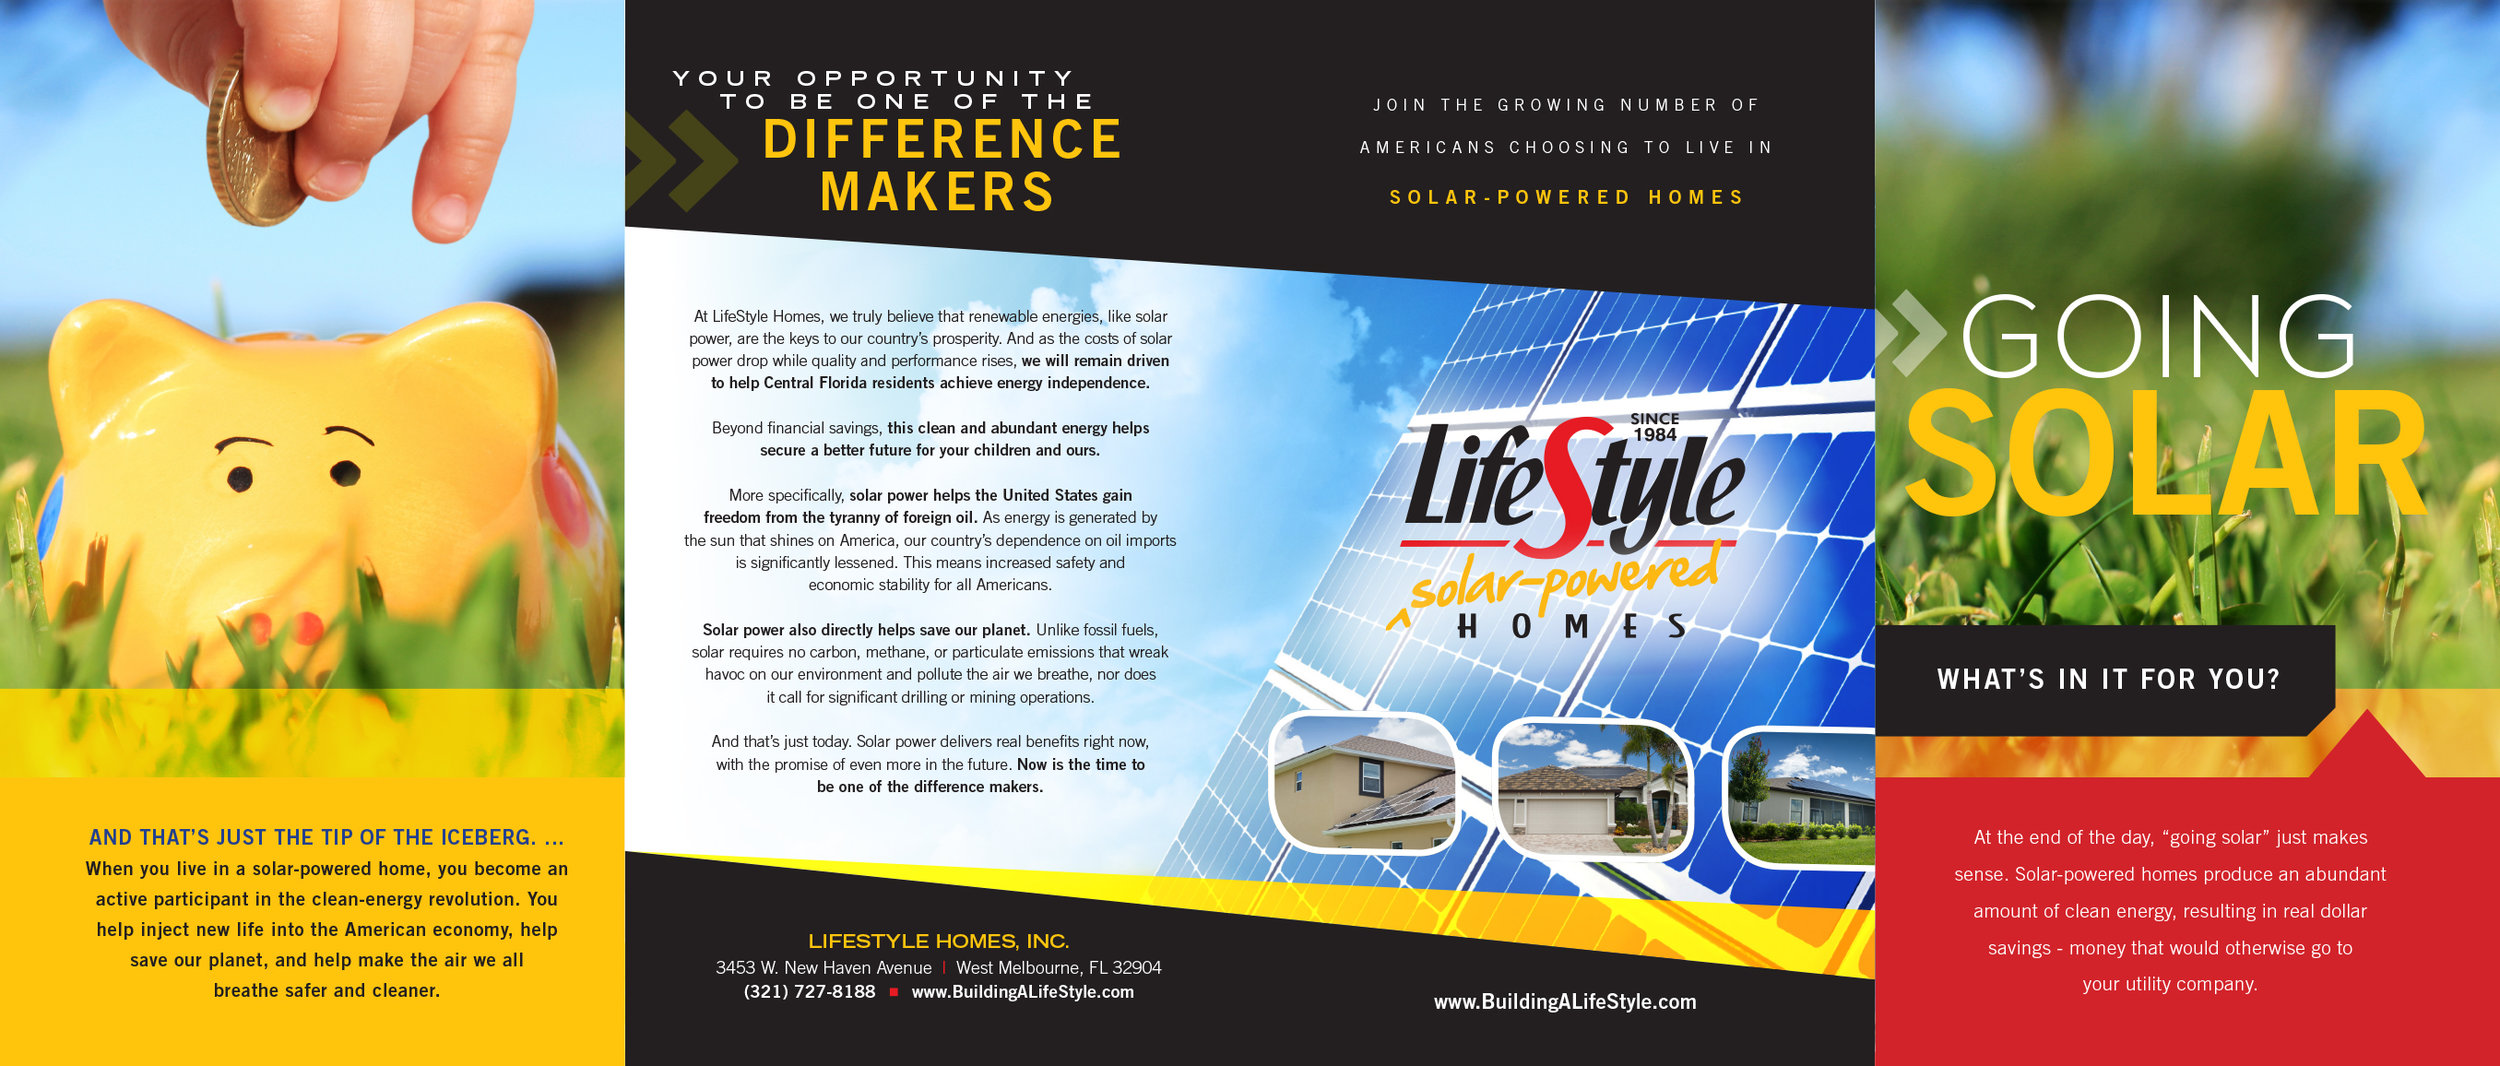 1215.Lifestyle.Gatefold.FINAL-1.jpg